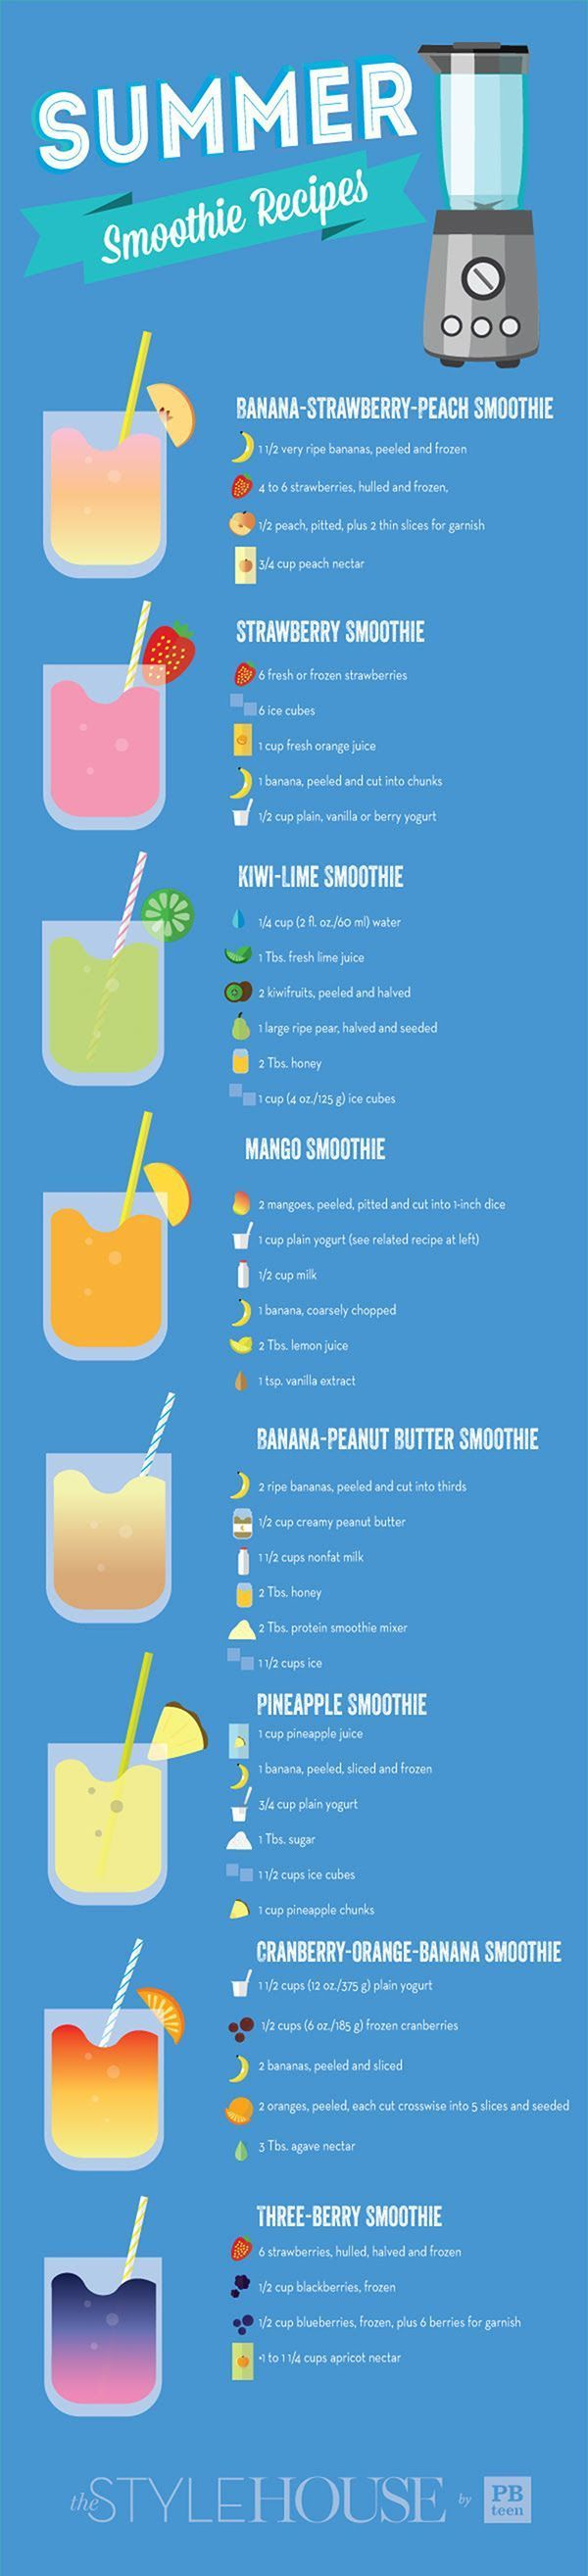 8 summer smoothie #recipes to keep you feeling fully refreshed! Come and see our new website at bakedcomfortfood.com!